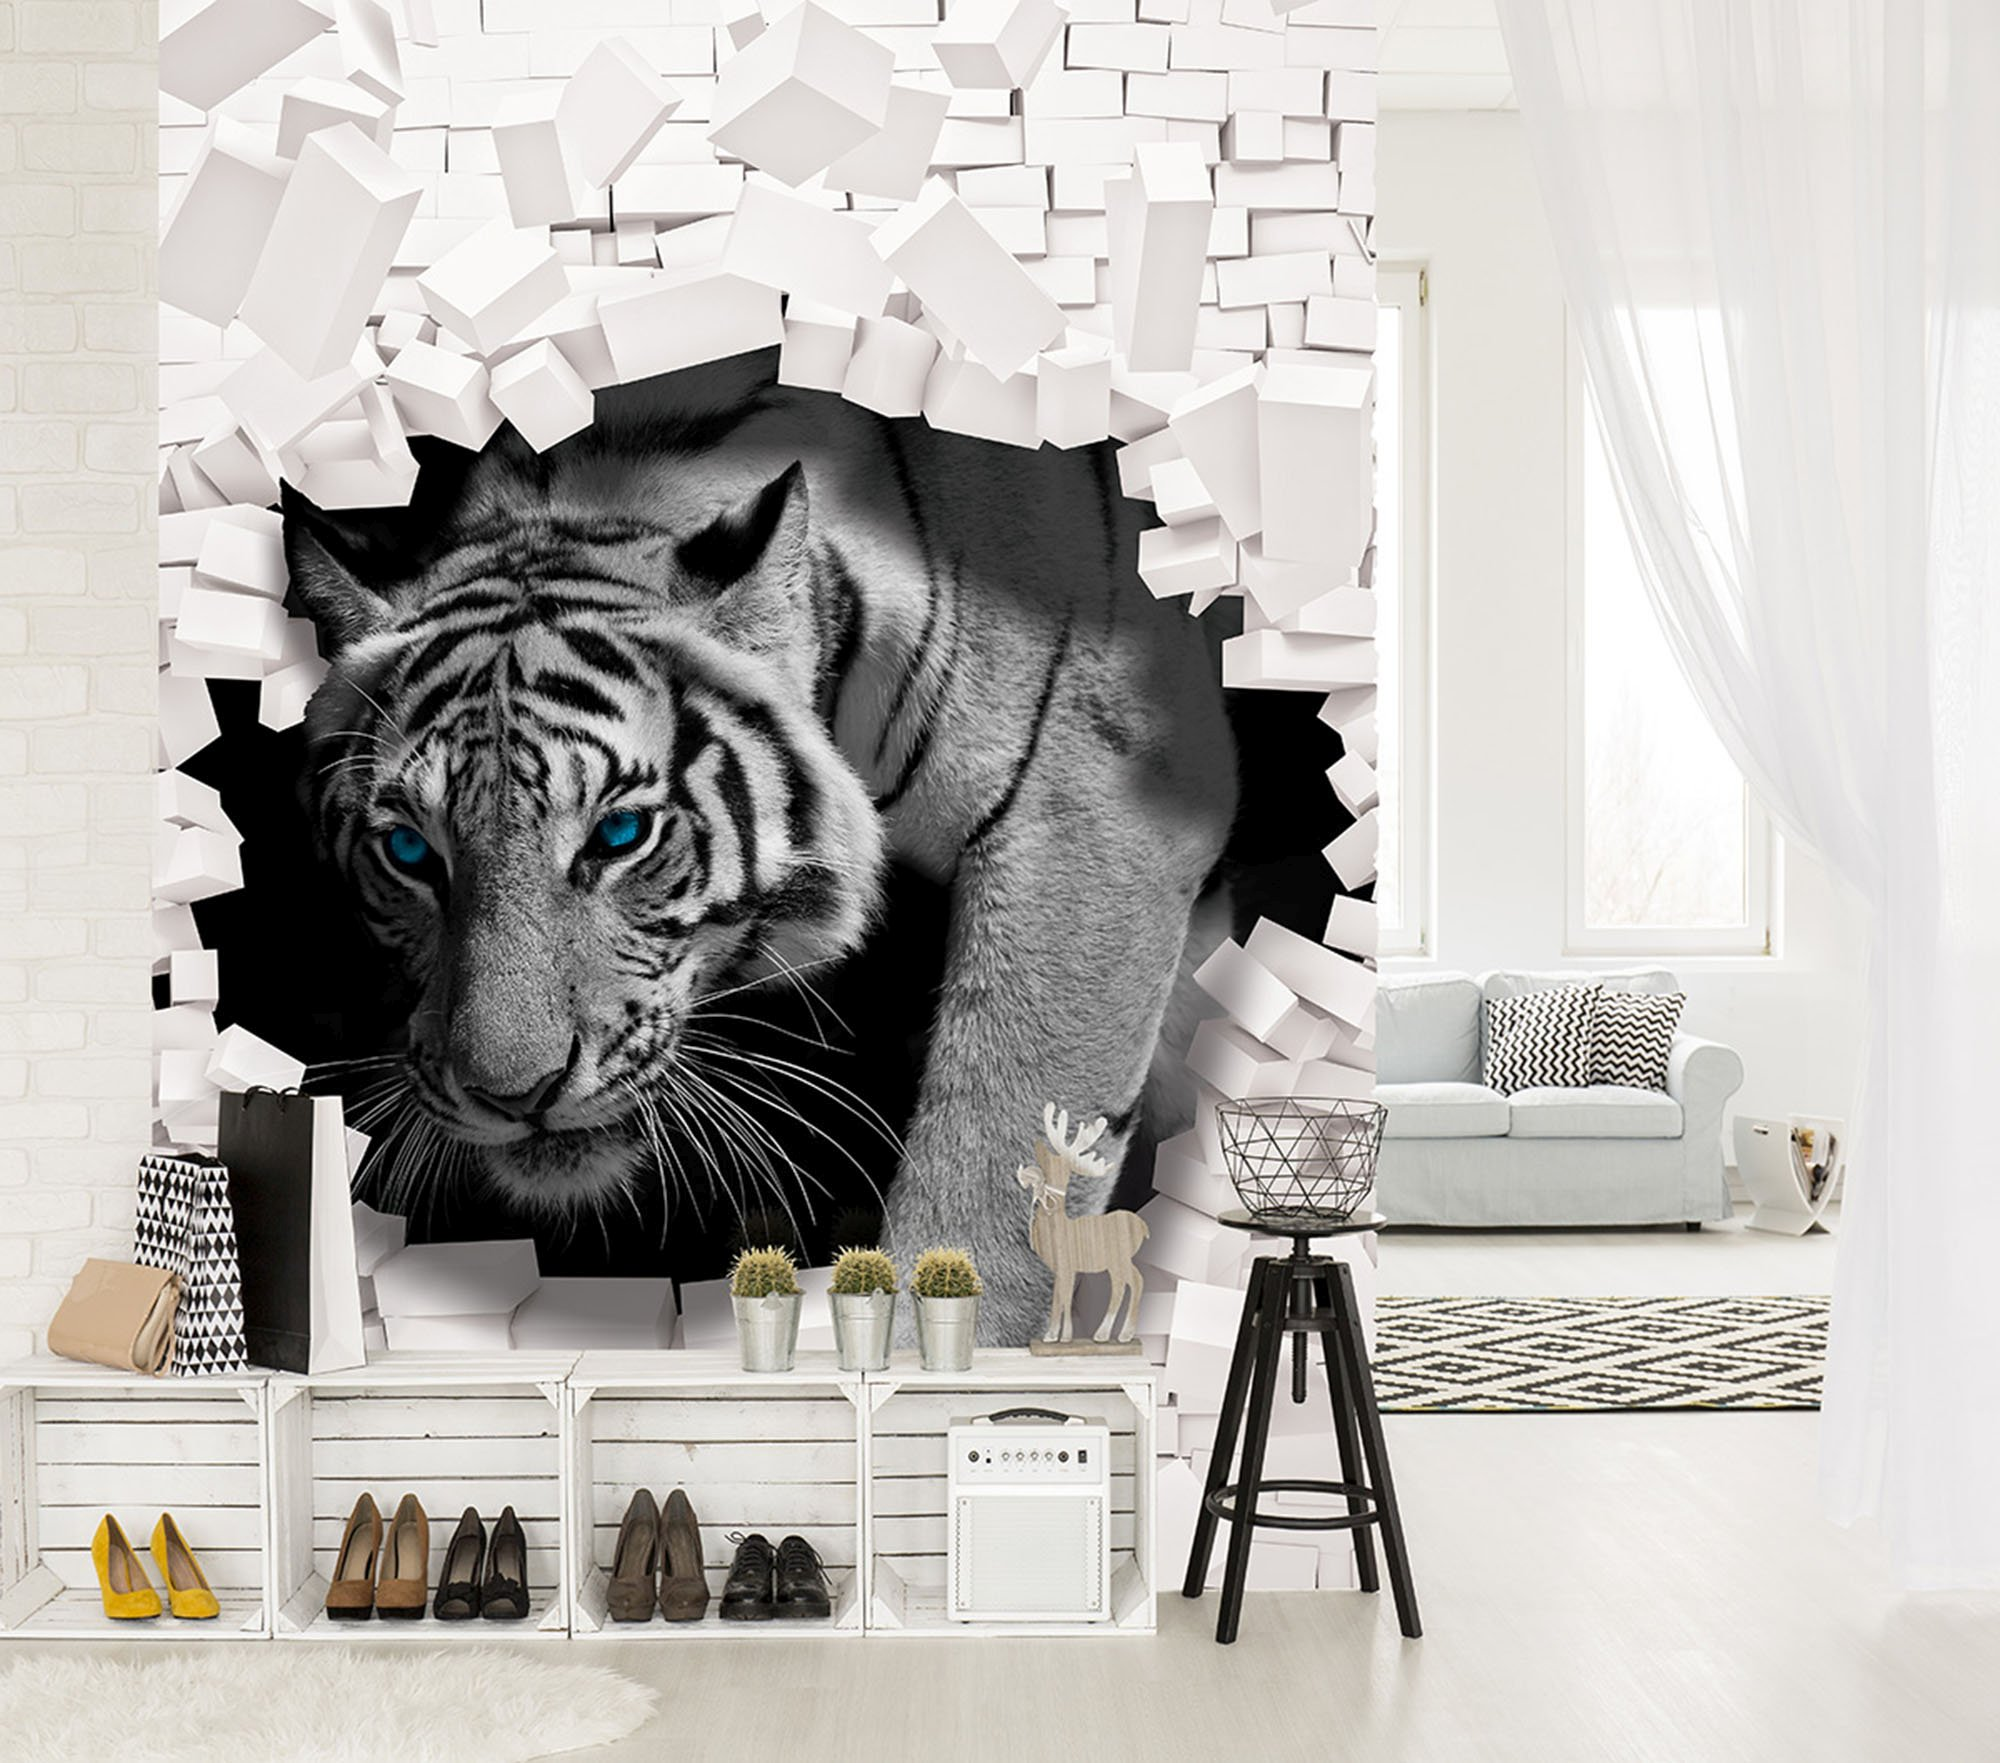 3d fototapete tiger kommt aus der wand. Black Bedroom Furniture Sets. Home Design Ideas